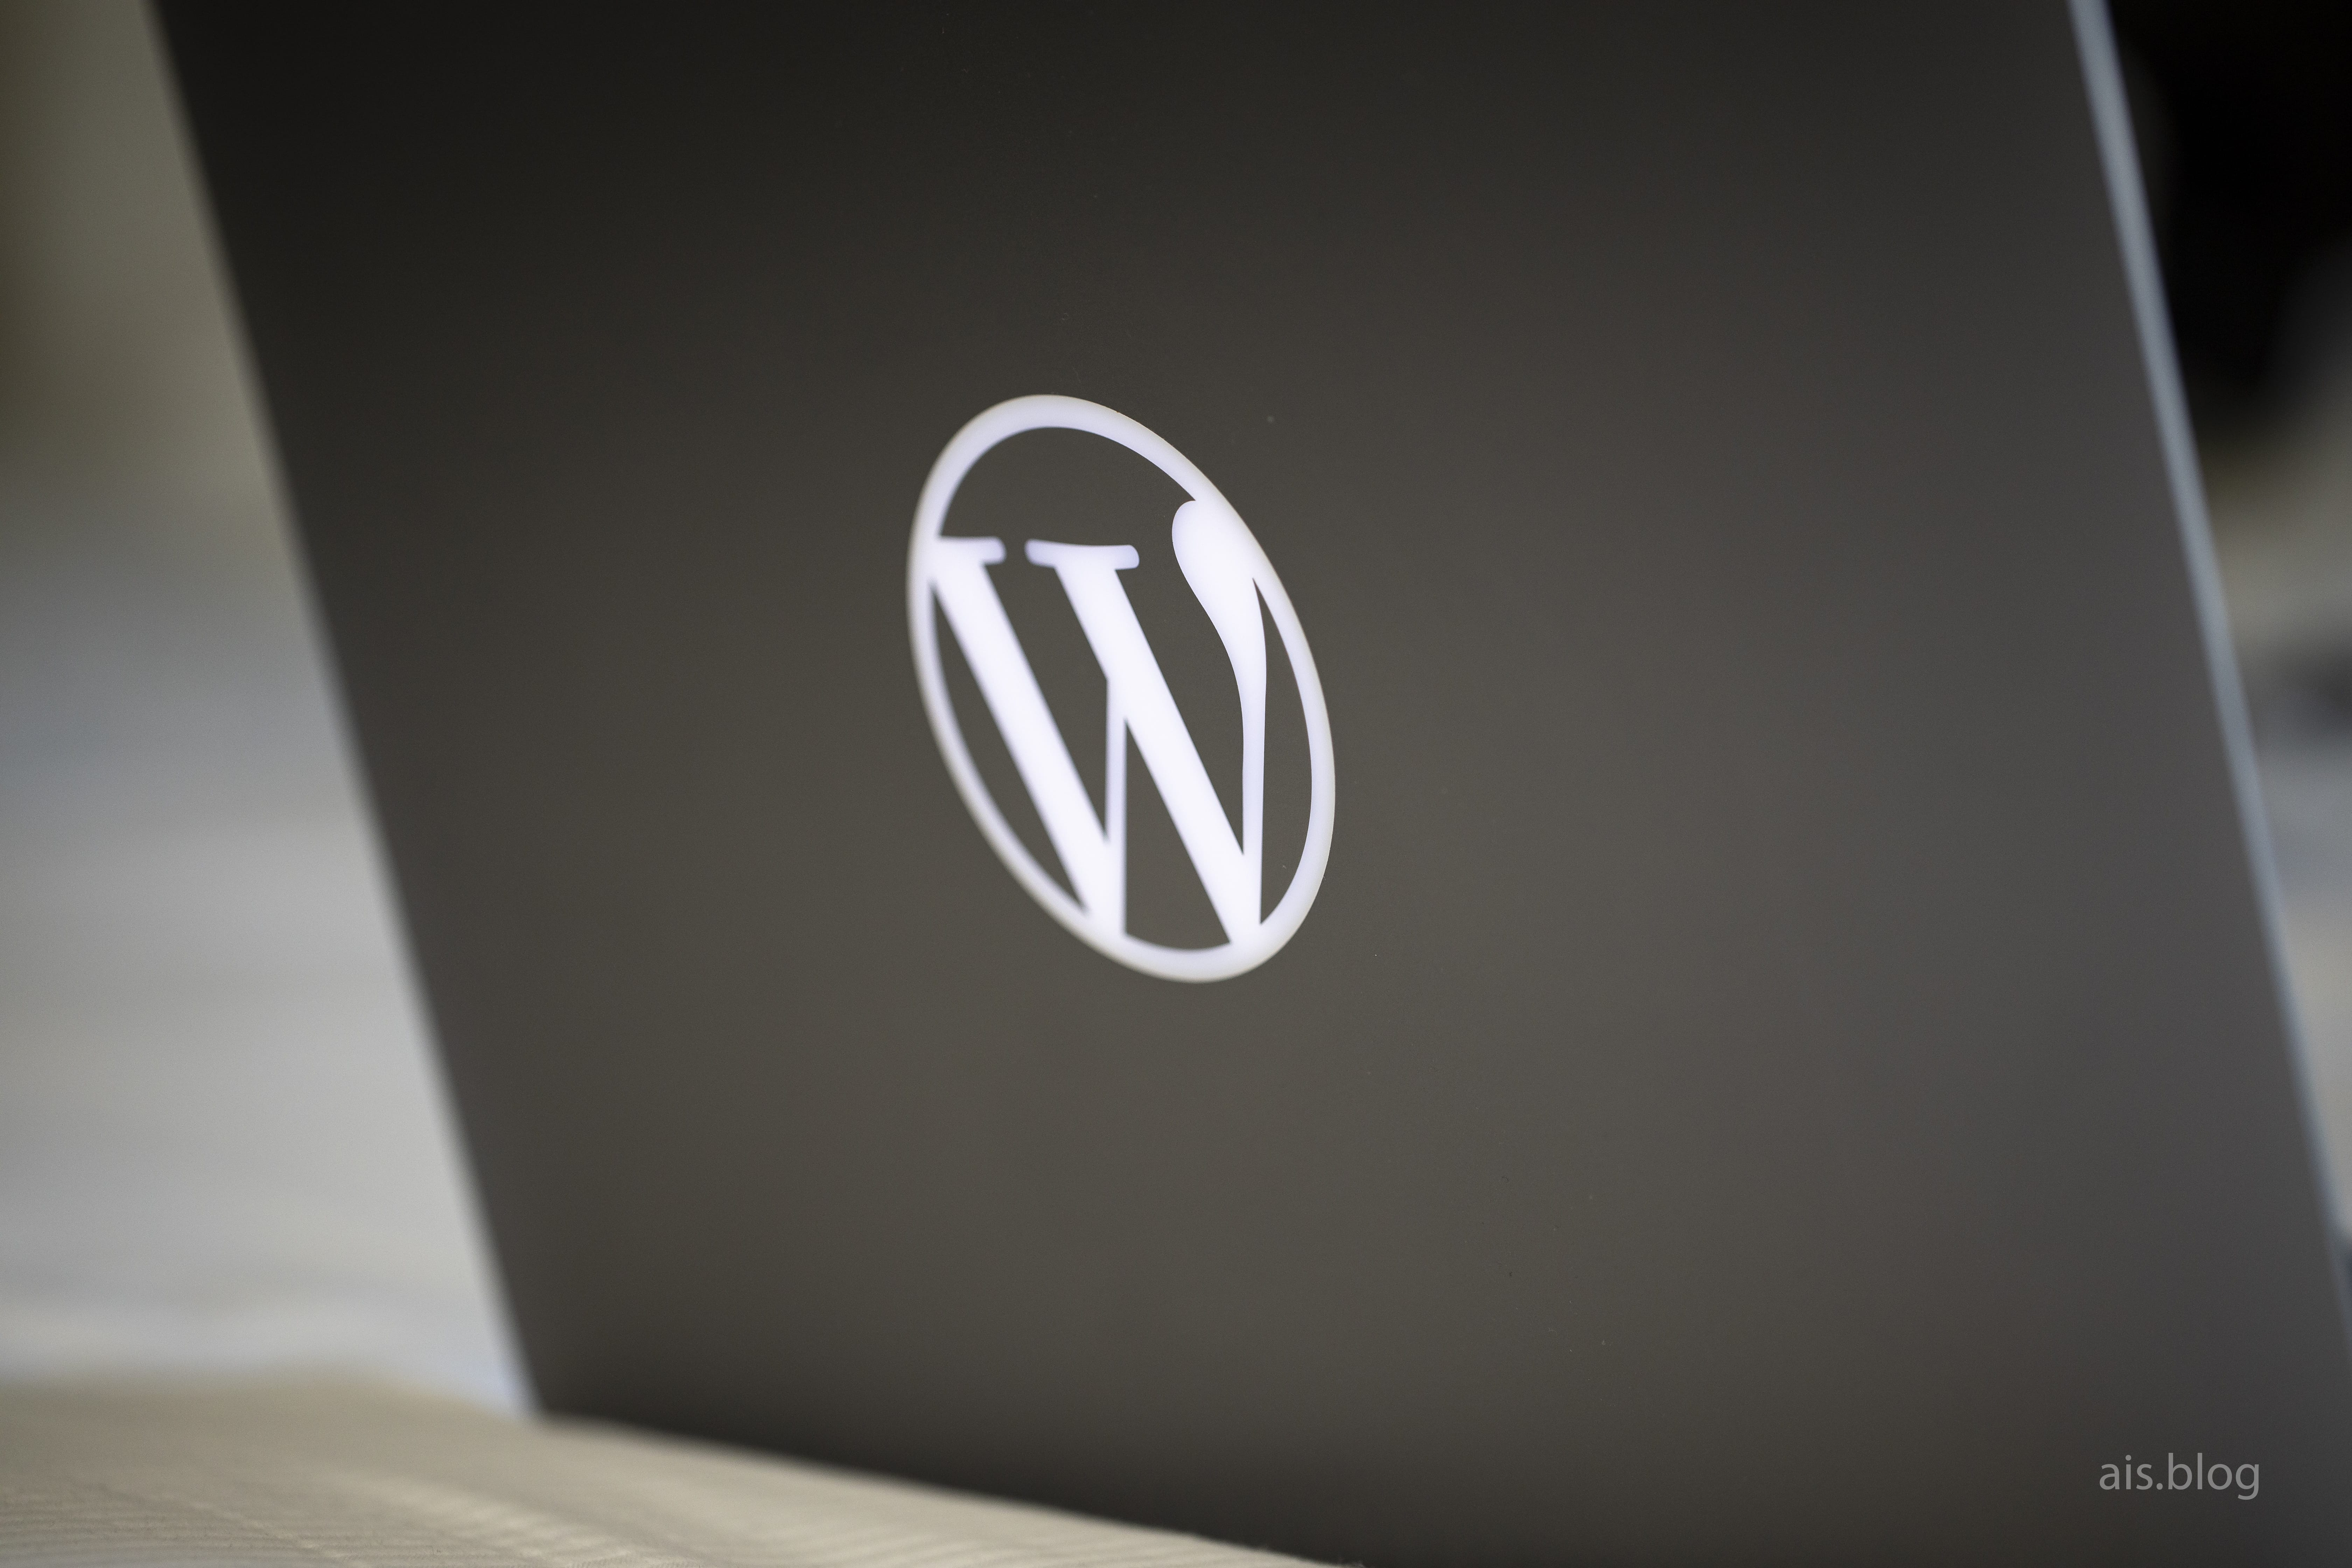 MacBook WordPress Logo